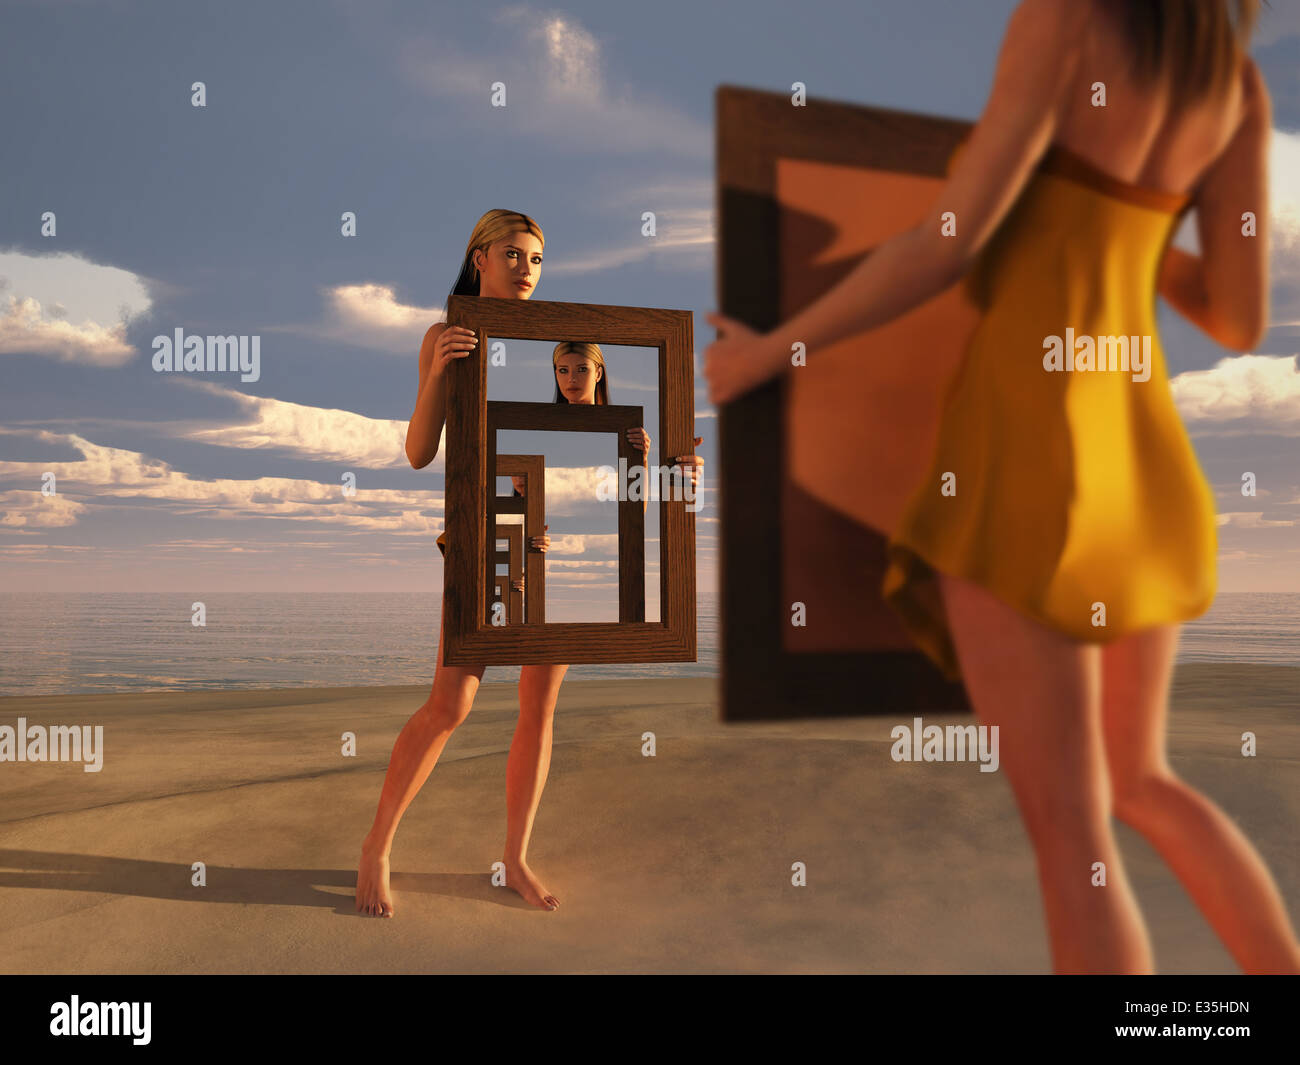 reflection of consciousness - Stock Image